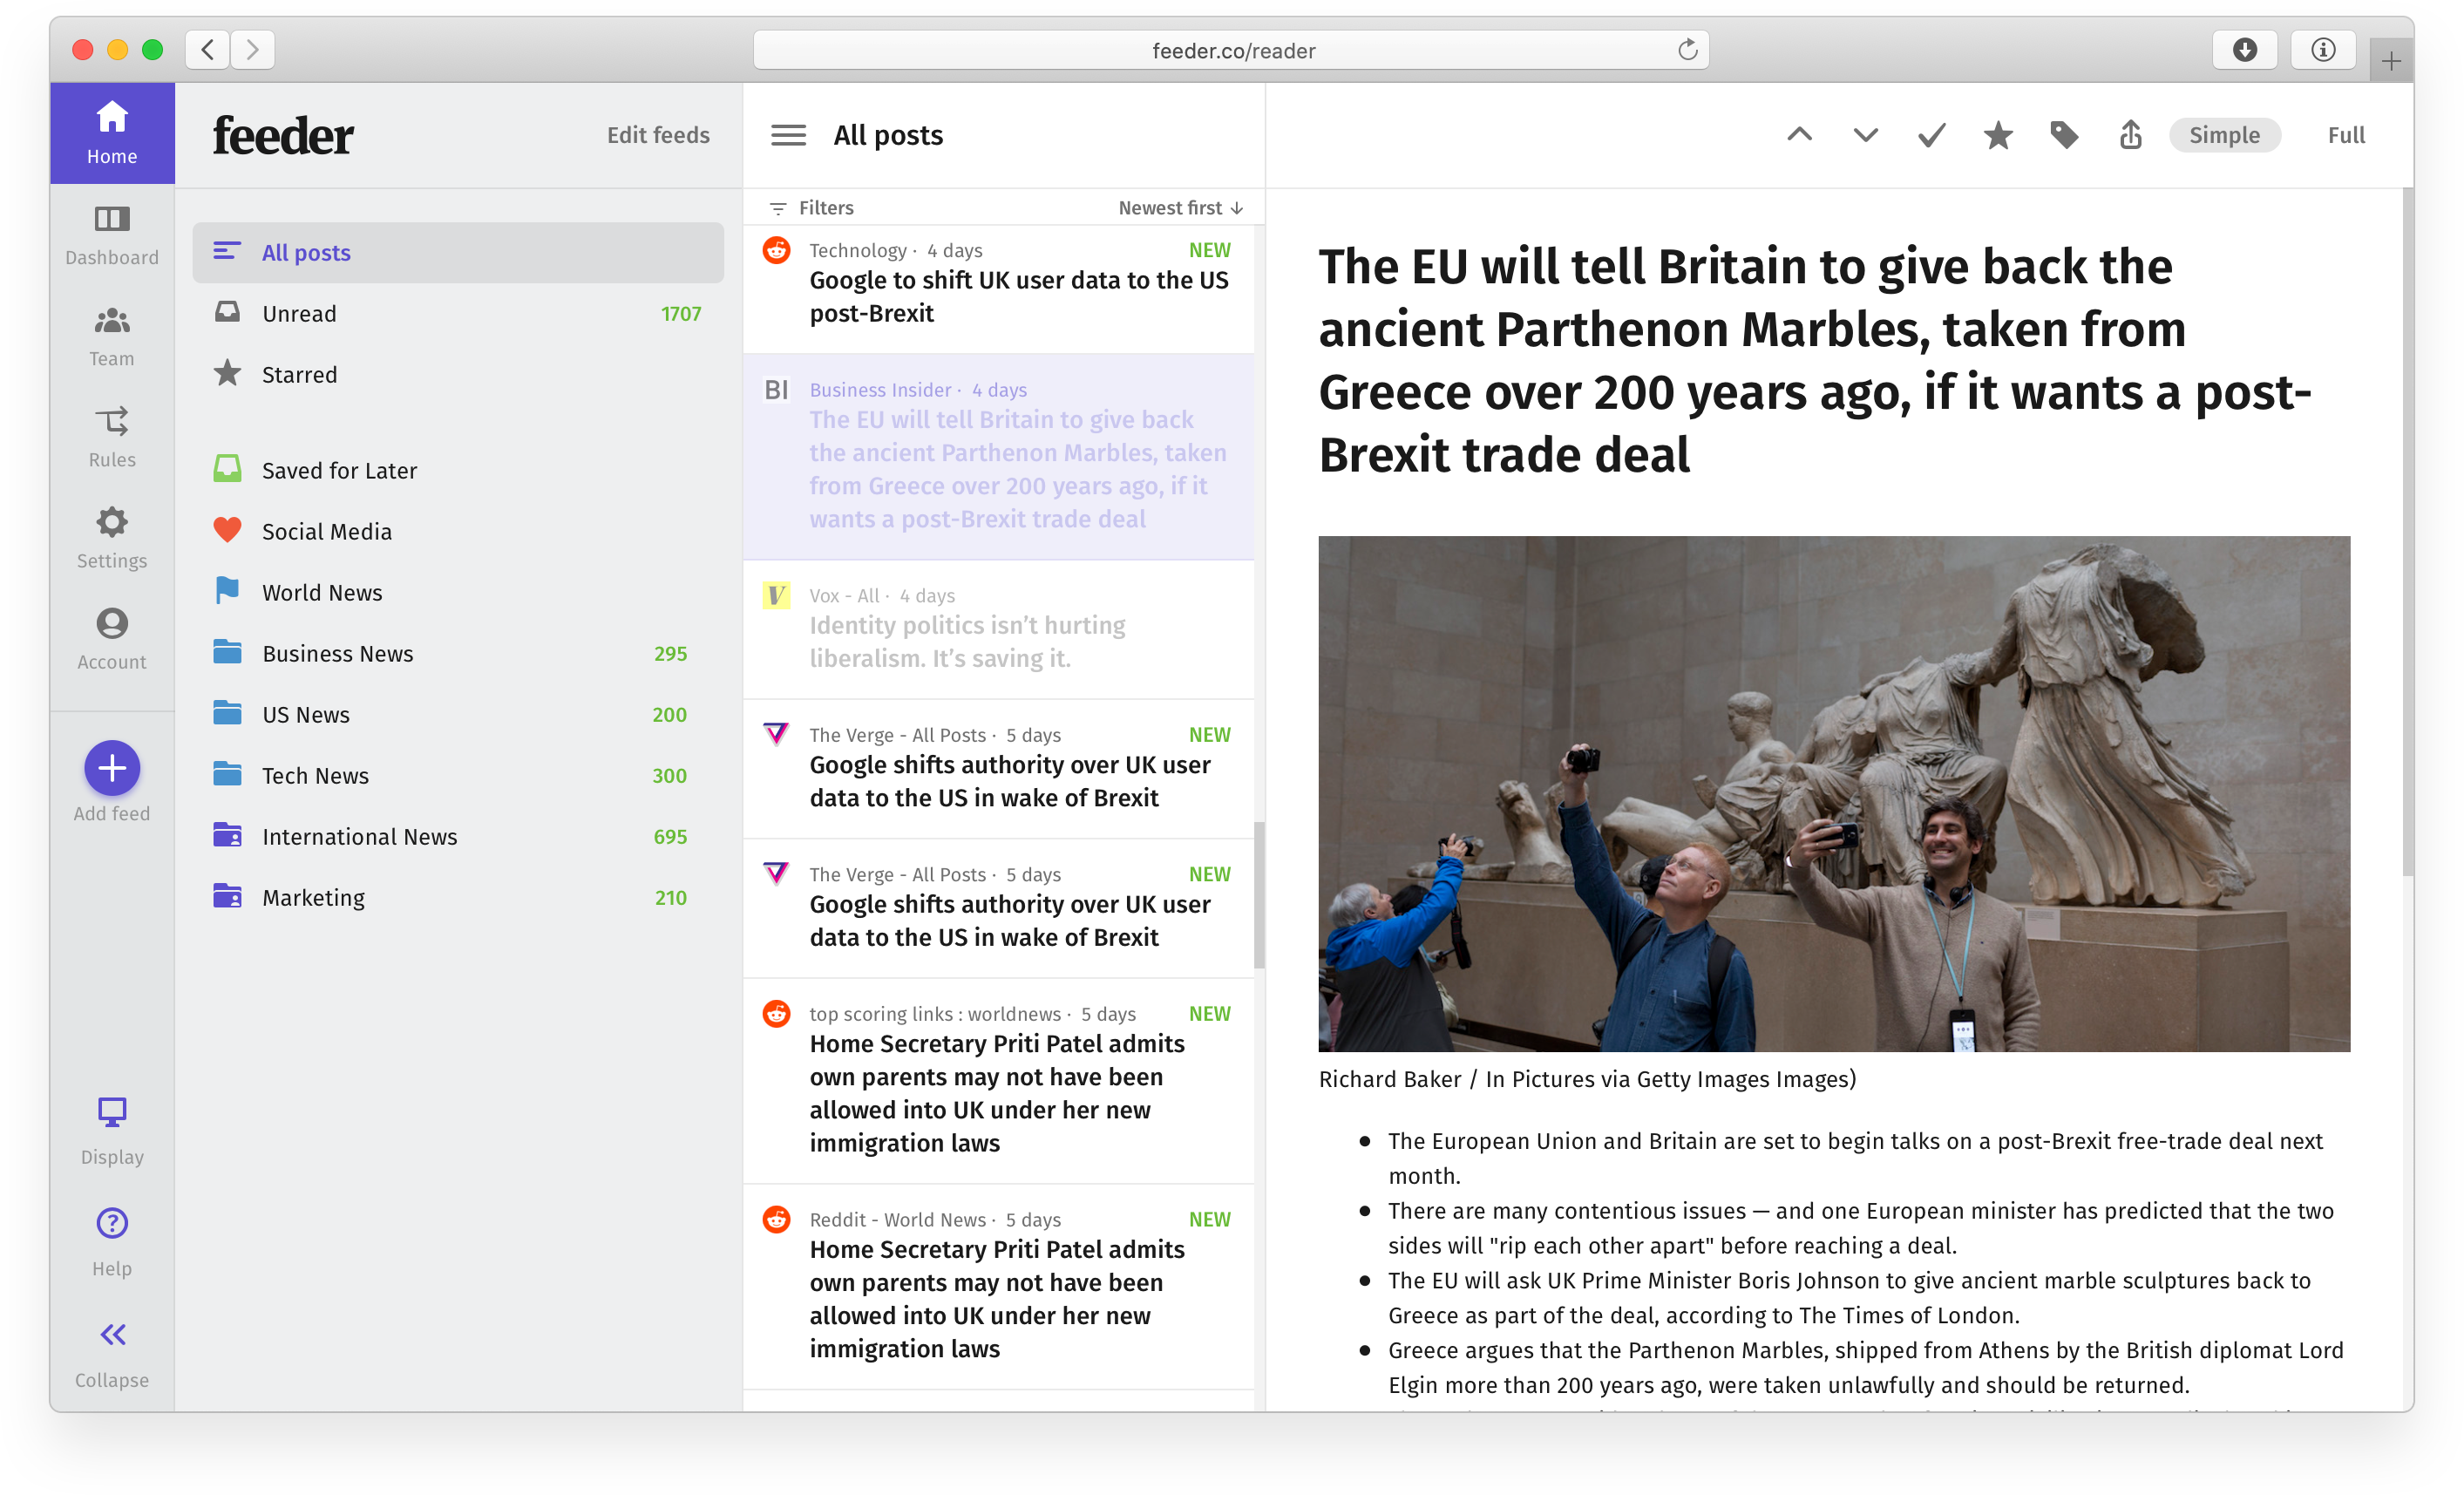 Feeder News Manager App for Android and iOS